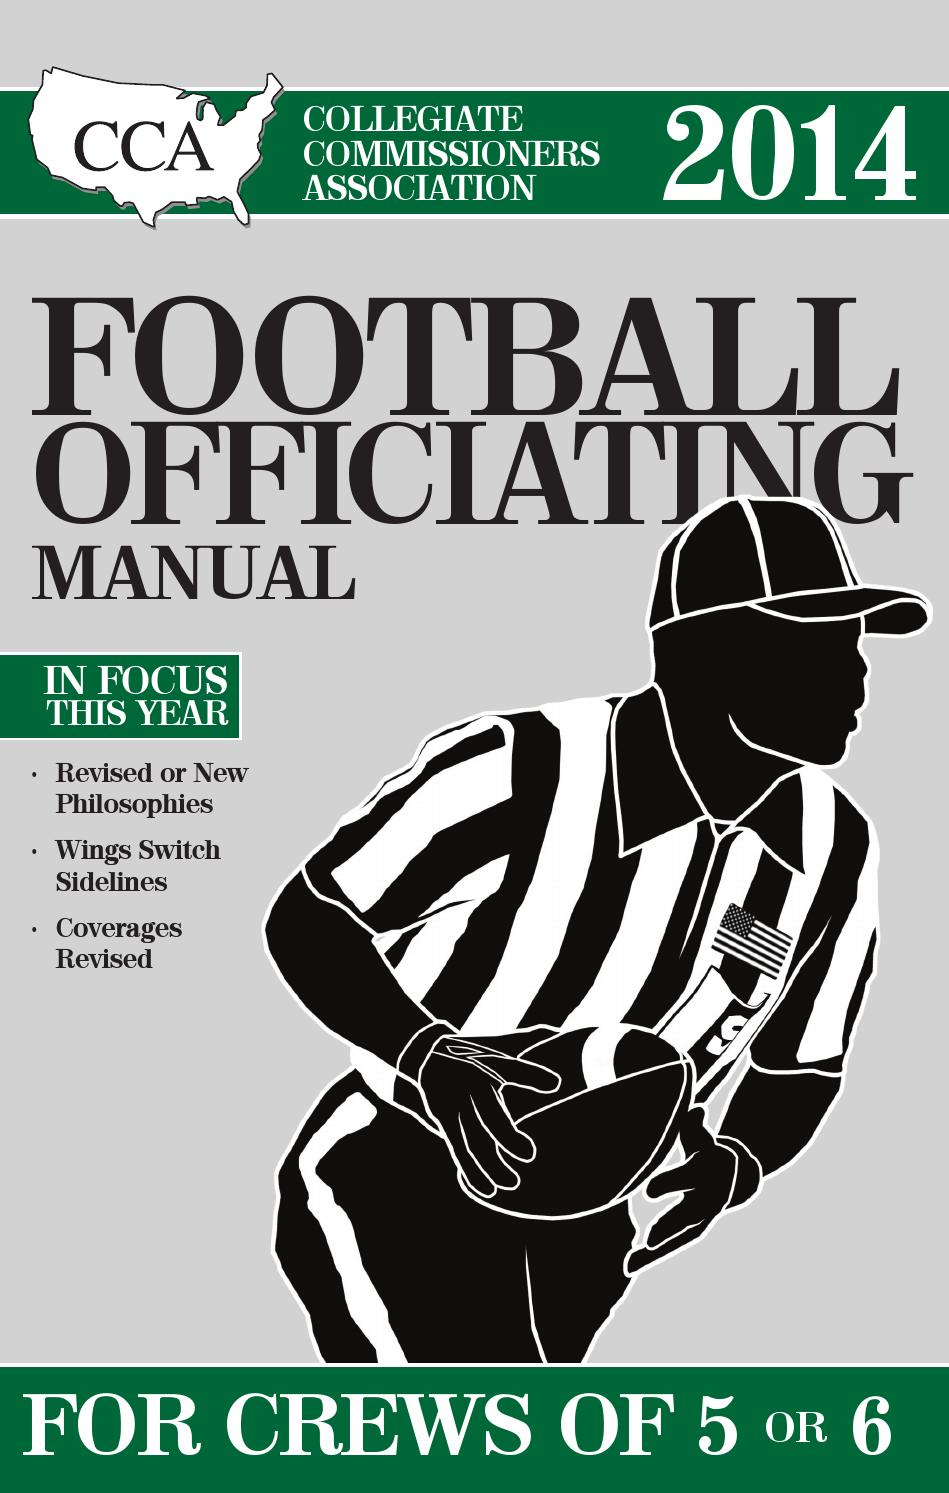 2014 CCA Football Officiating Manual: For Crews of 5 or 6 - Sample Chapter  by Referee Magazine - issuu